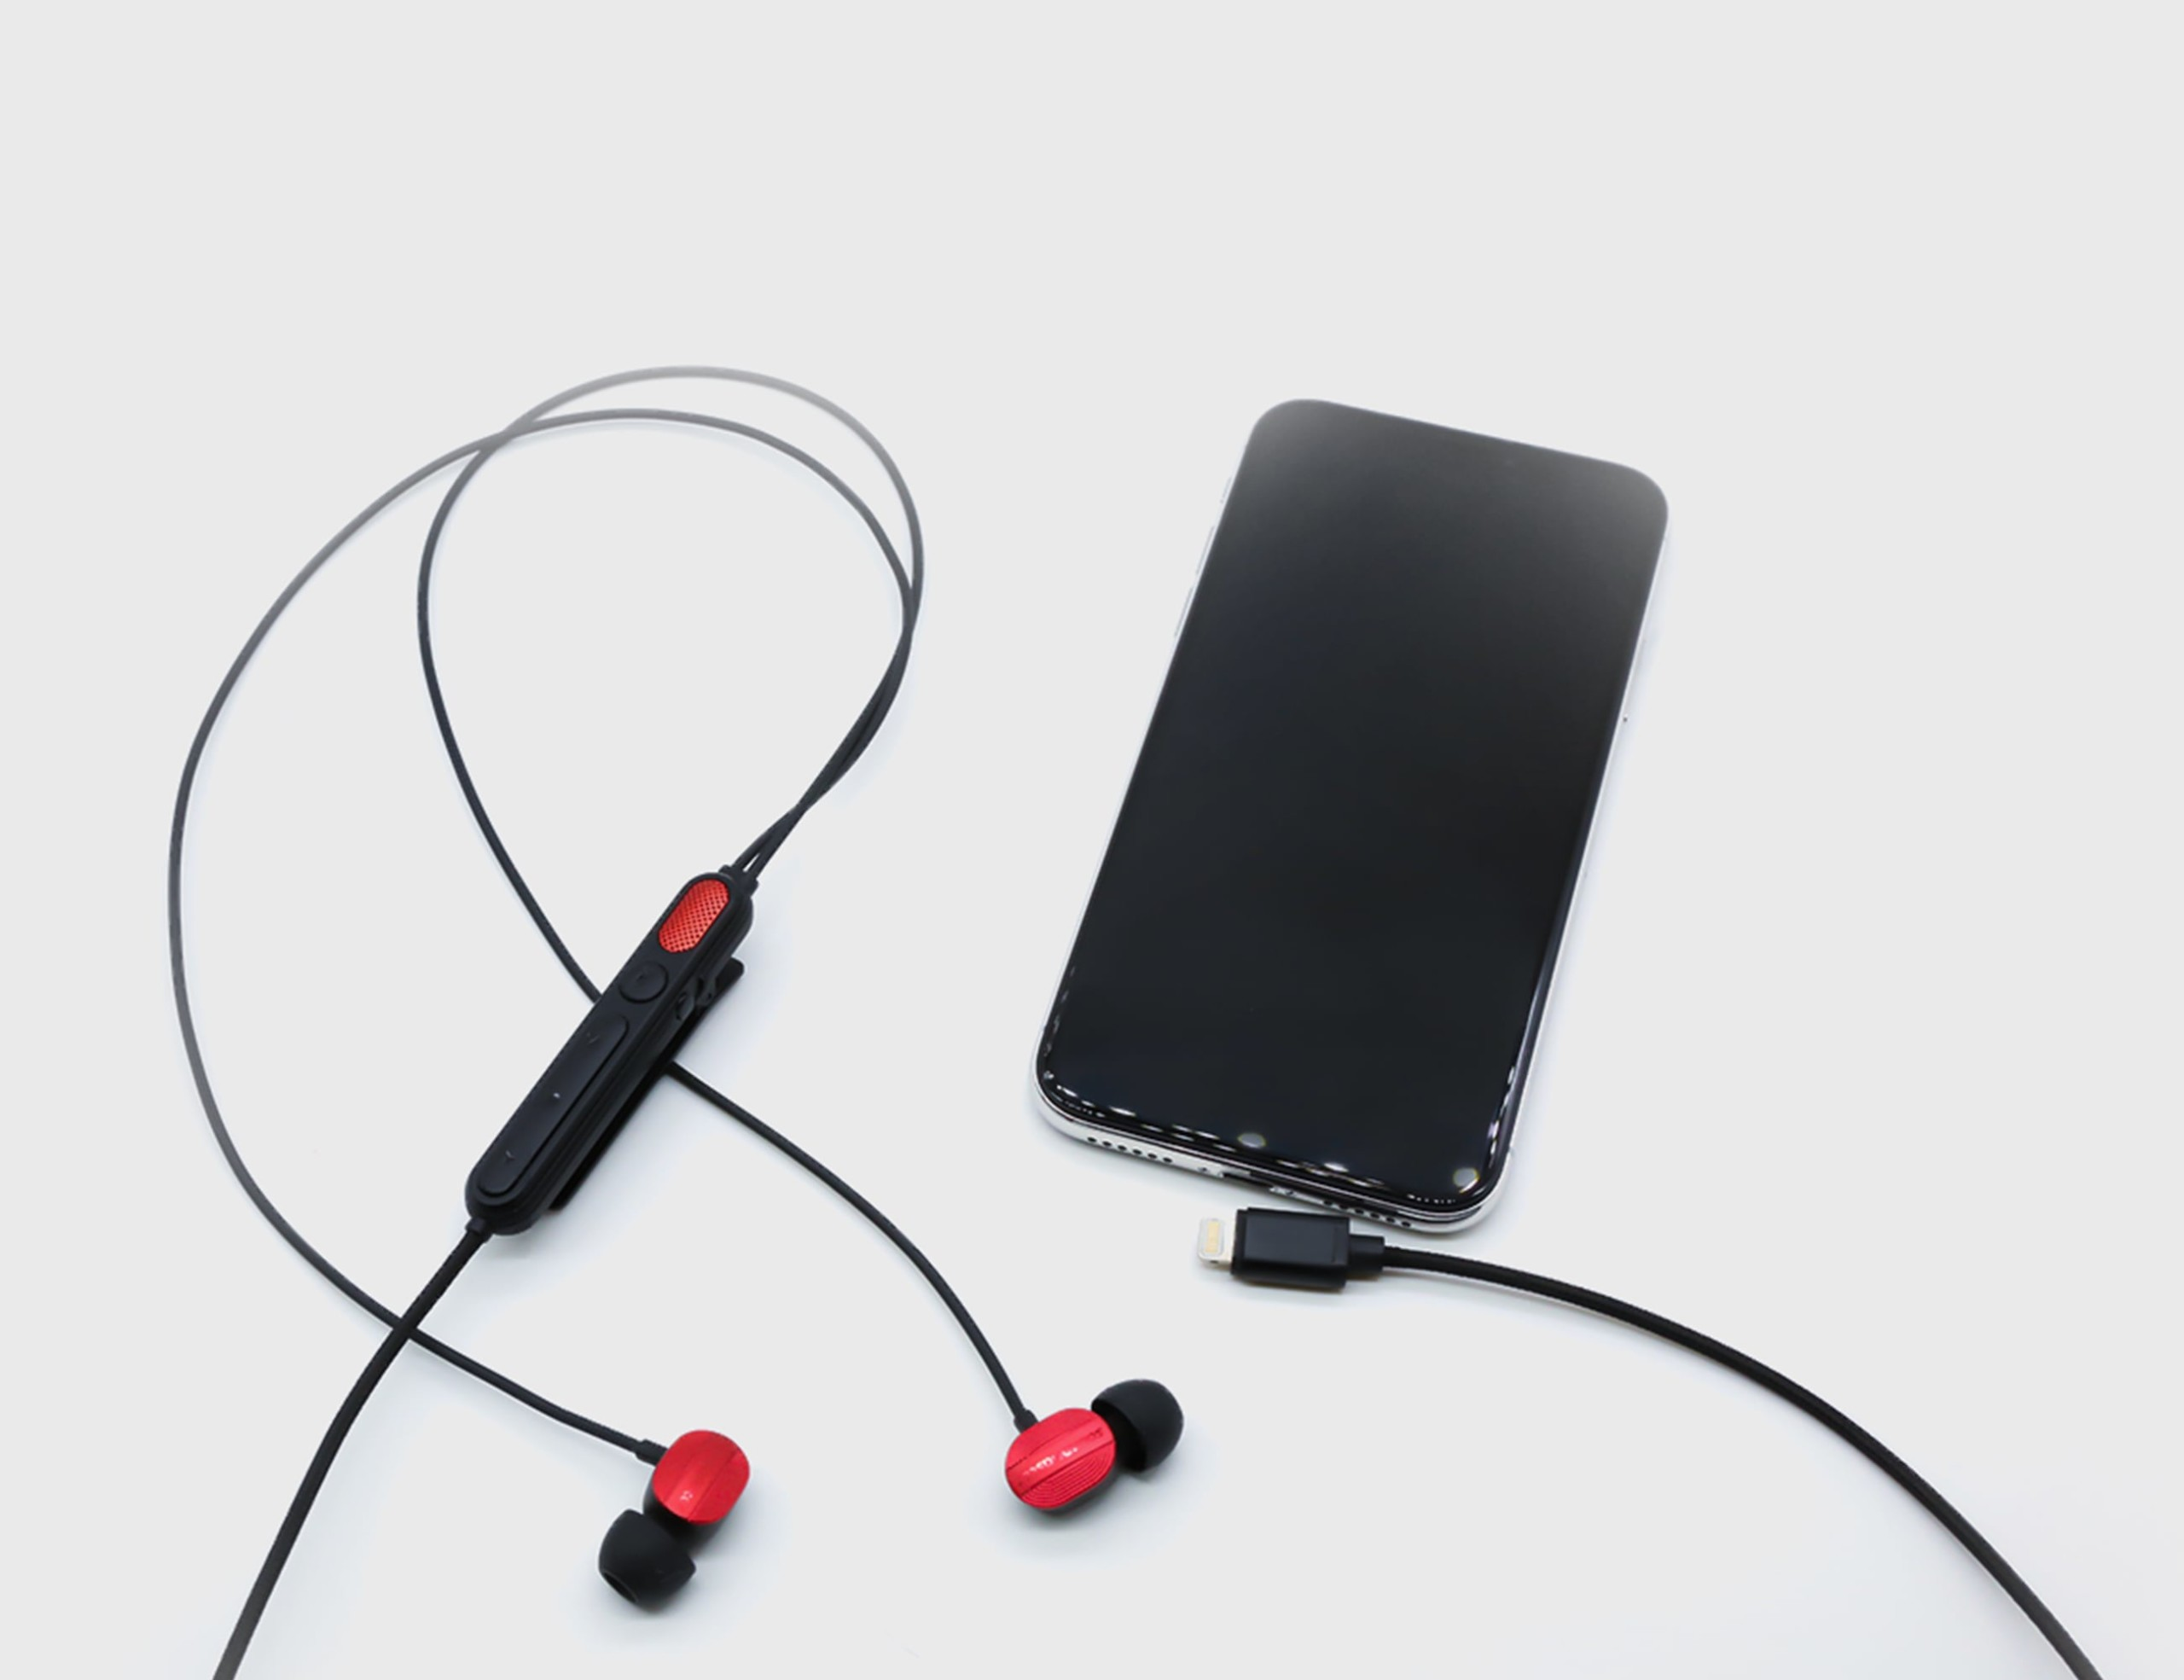 Soundmaster E1 Charge-Free ANC Earbuds